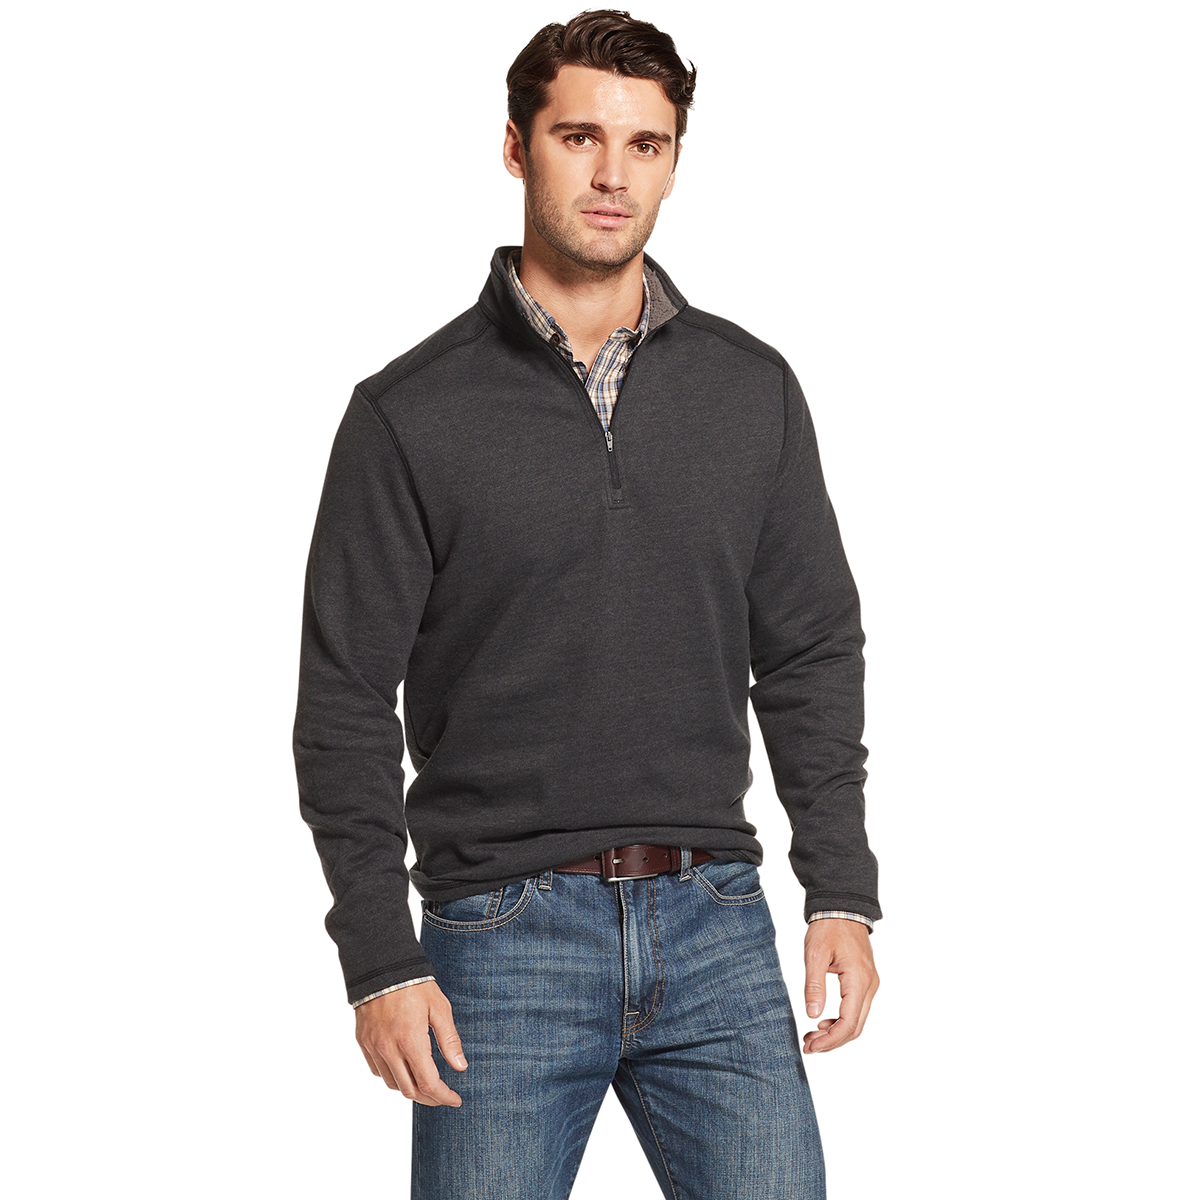 Arrow Men's Long-Sleeve Sueded Fleece 1/4 Zip - Black, M